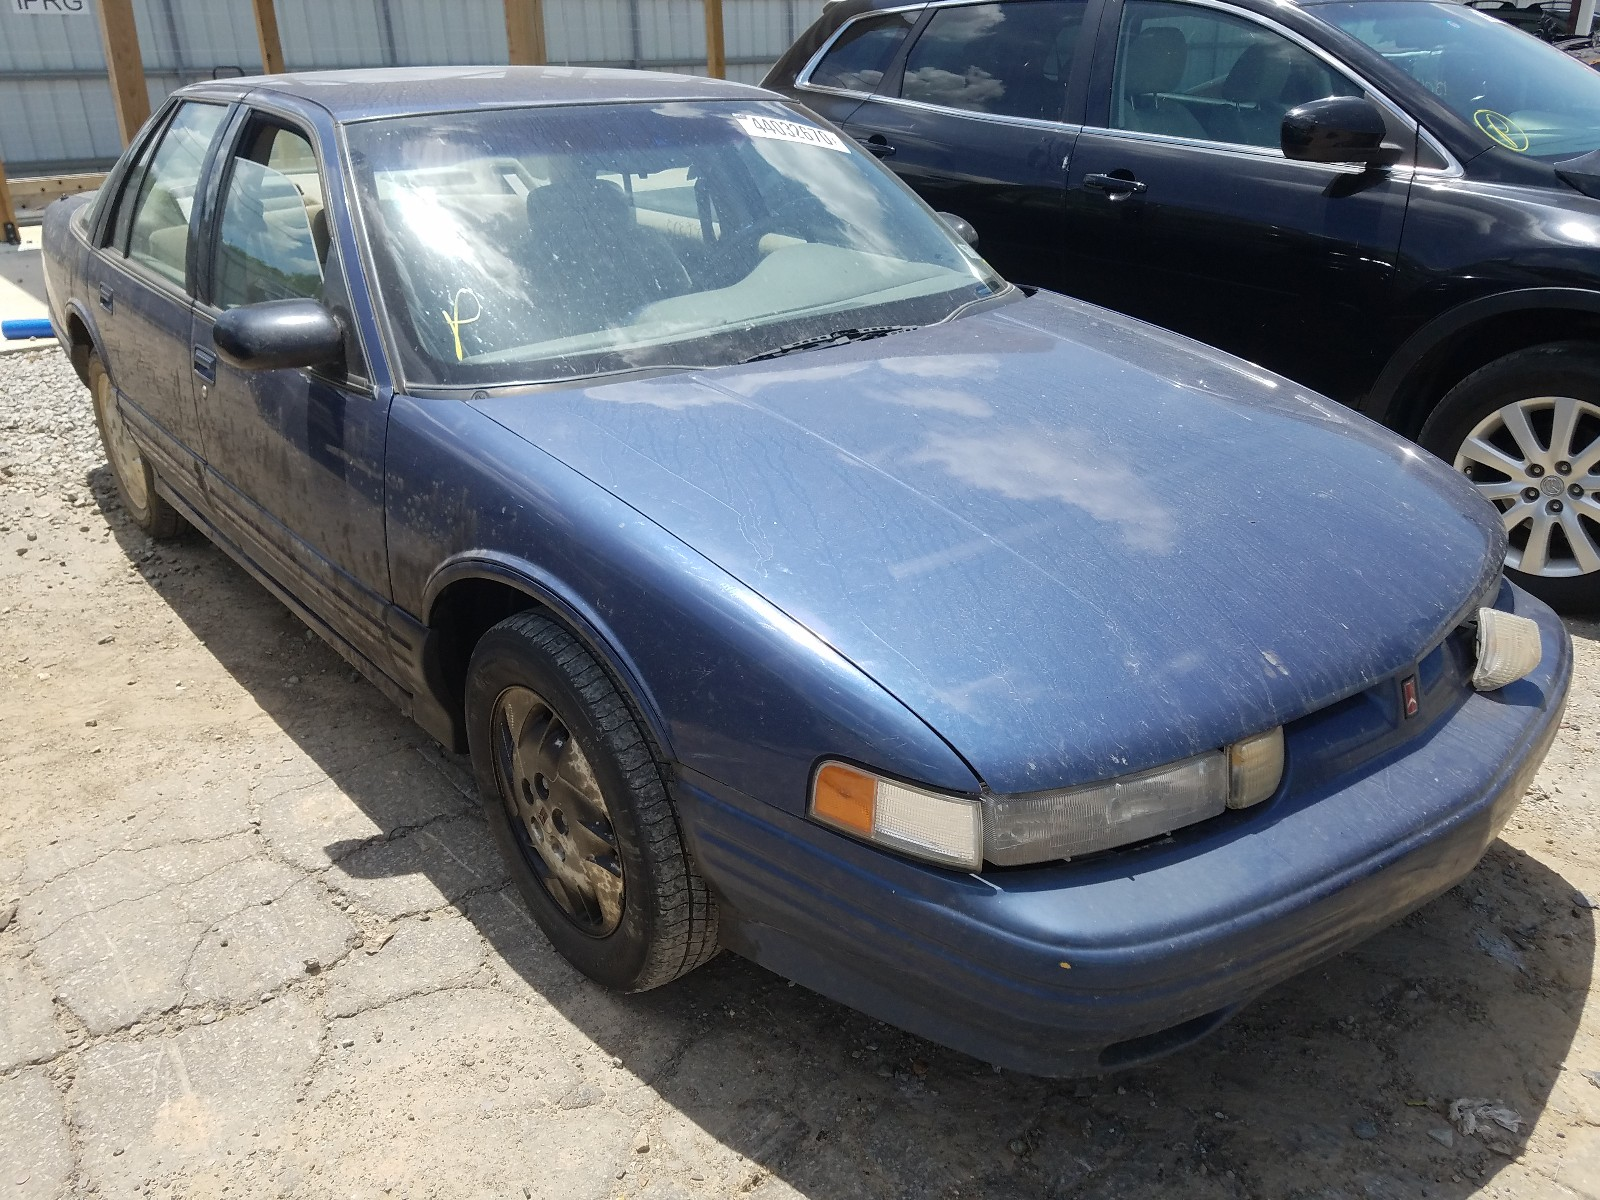 1997 oldsmobile cutlass su for sale at copart conway ar lot 44032670 salvagereseller com salvagereseller com